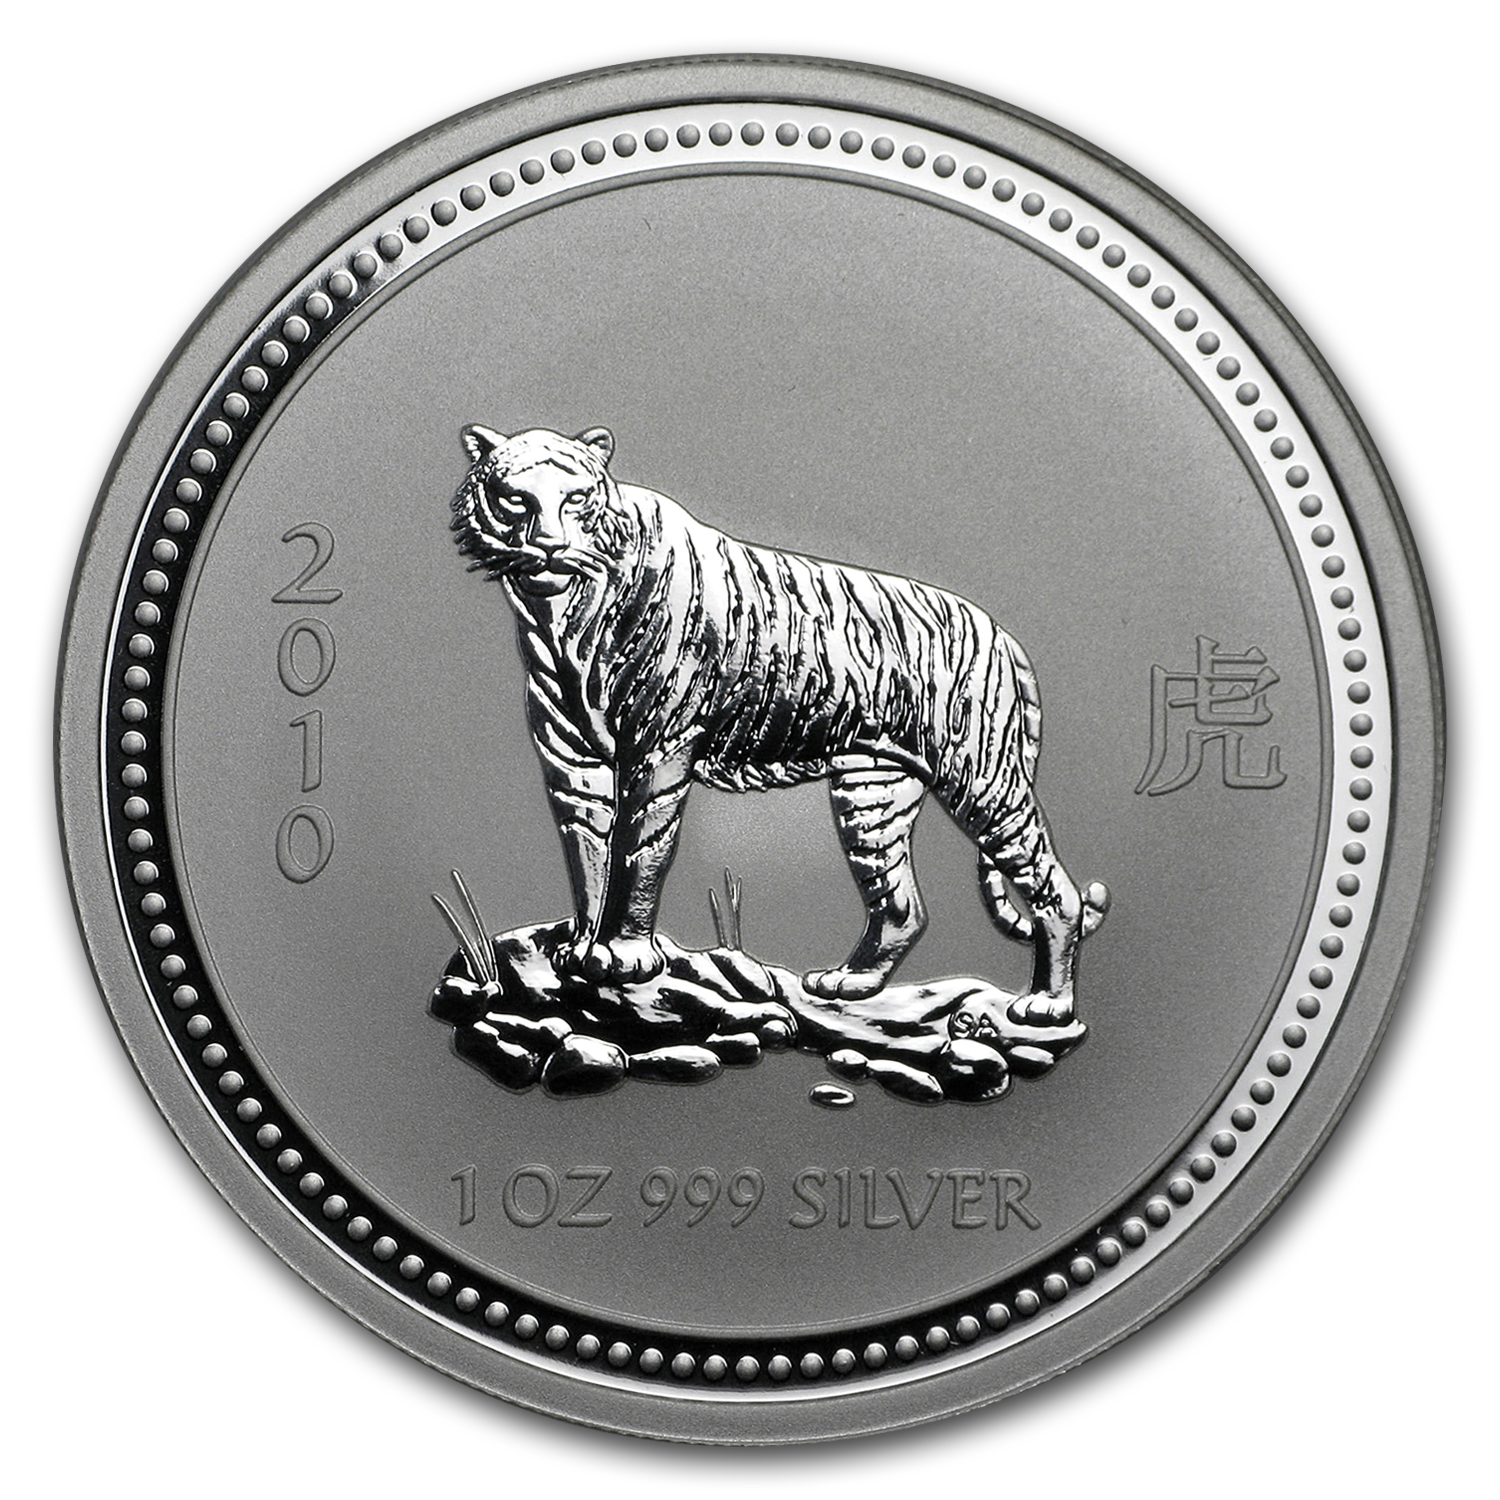 2010 Australia 1 Oz Silver Year Of The Tiger Bu Series I